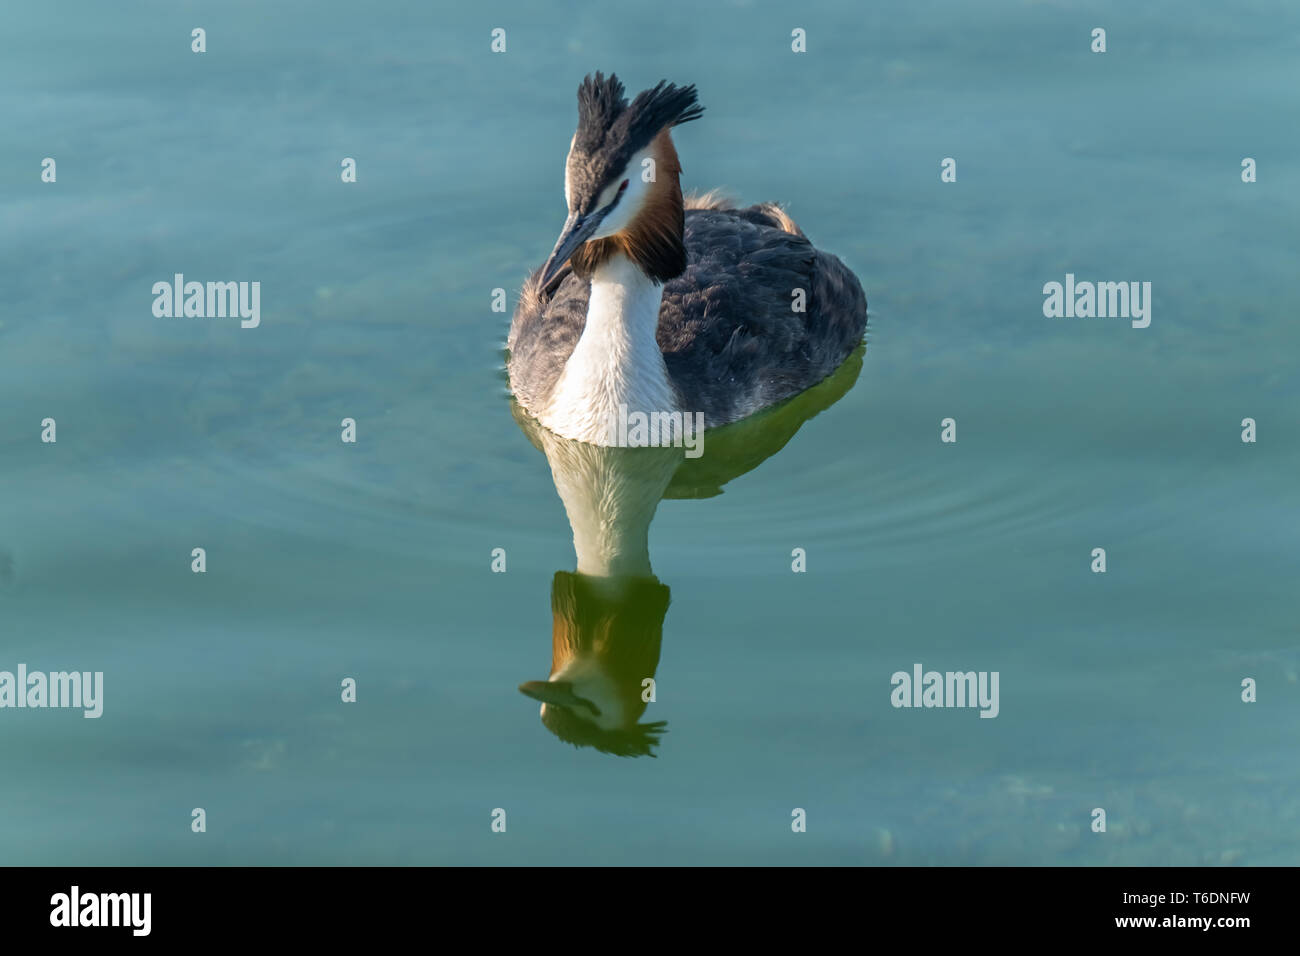 Breeding great crested grebes on the shores of the upper zurich lake, near Rapperswil, Sankt Gallen, Switzerland - Stock Image